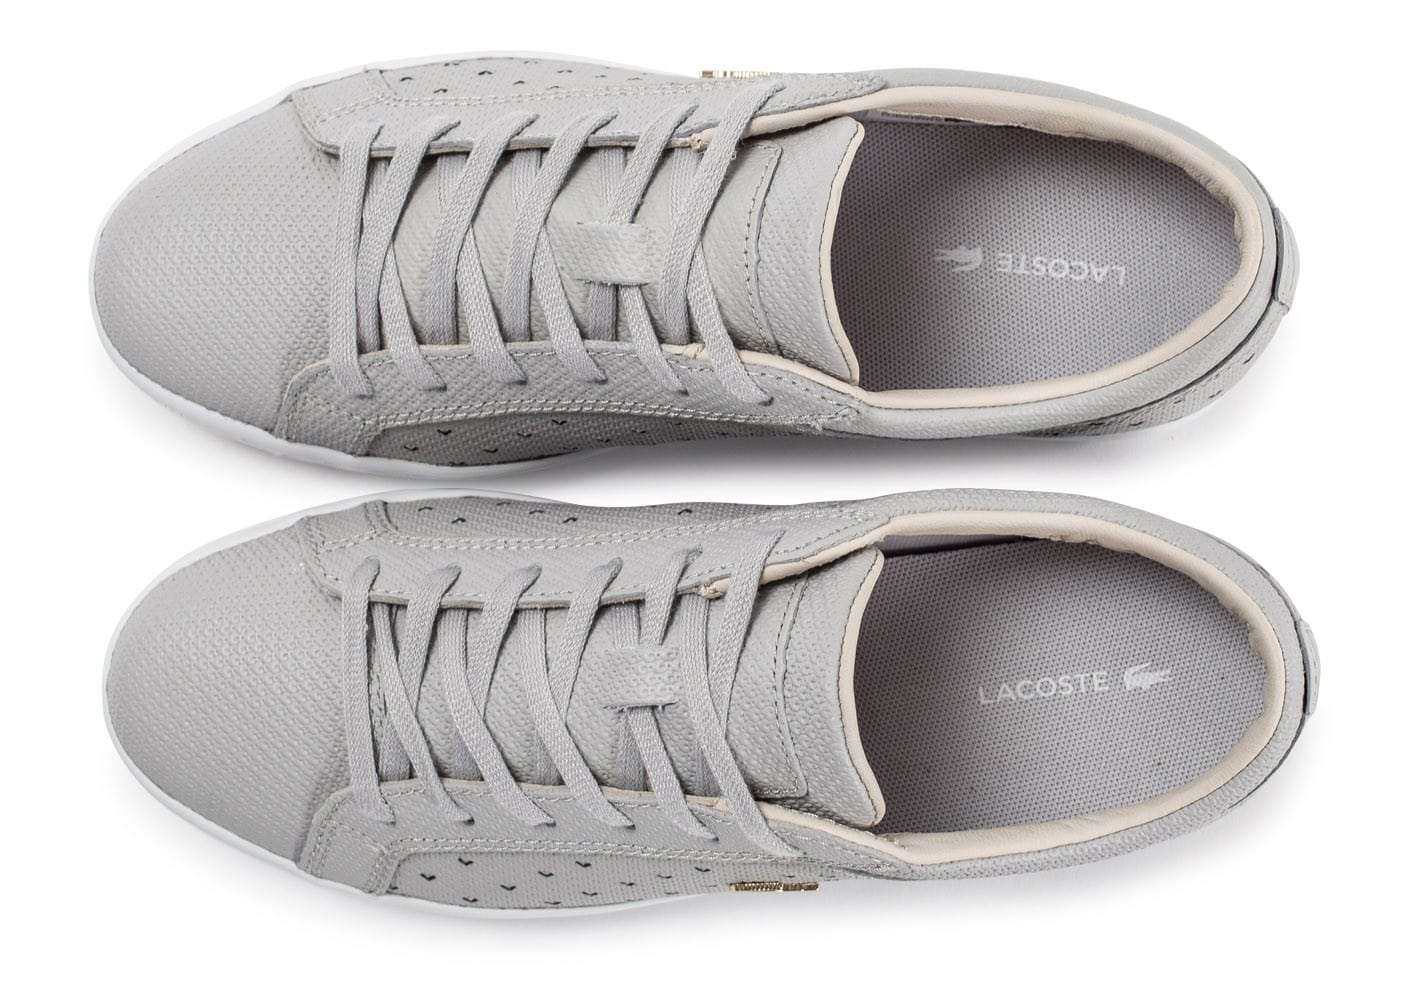 03321ec6bf7a Lacoste Straightset 117 grise - Chaussures Baskets femme - Chausport